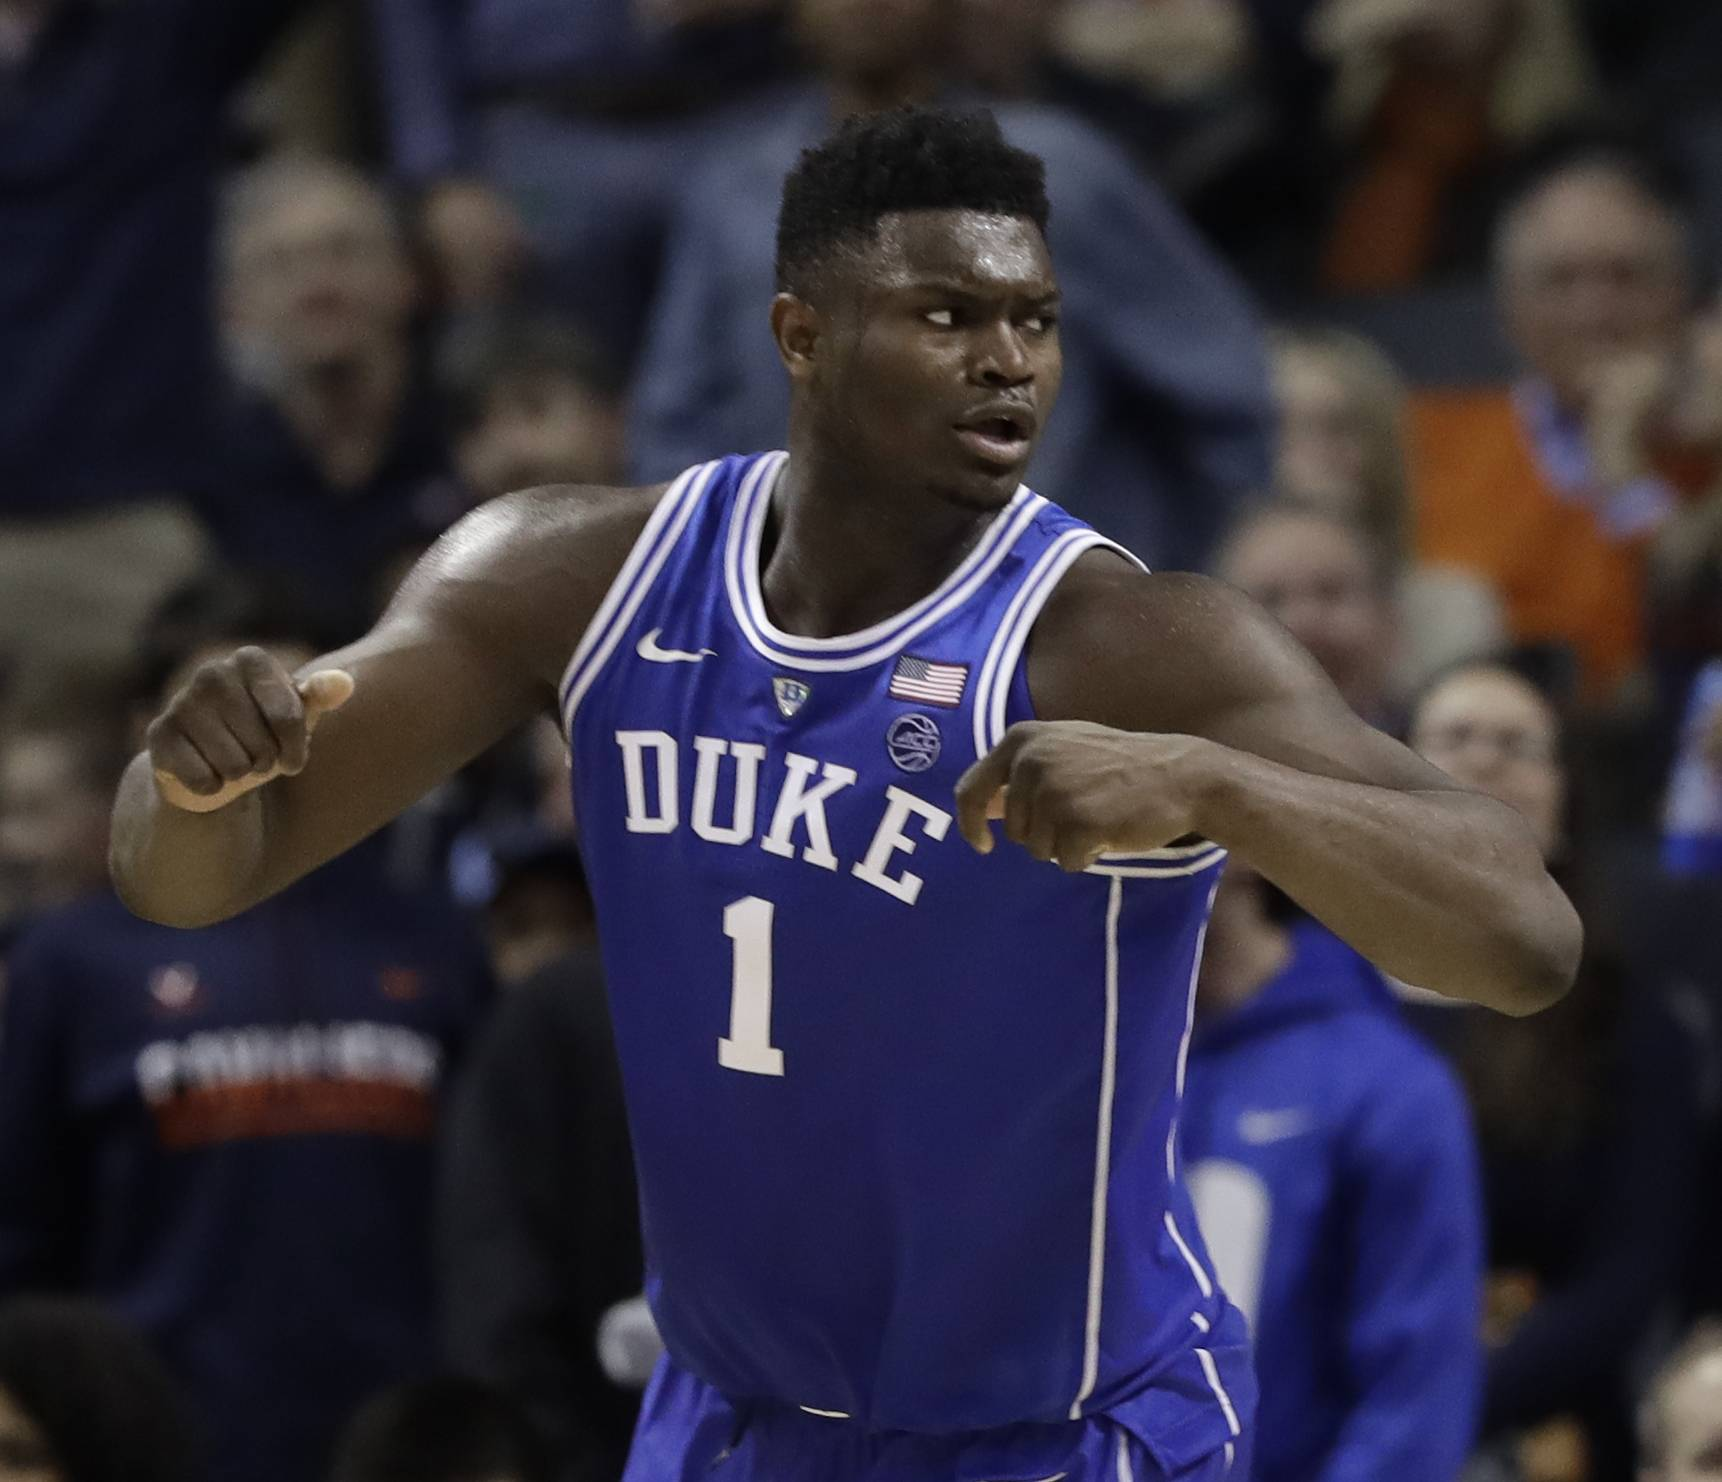 Duke's Zion Williamson (1) reacts after scoring against North Carolina during the second half of an NCAA college basketball game in the Atlantic Coast Conference tournament in Charlotte, N.C., Friday, March 15, 2019. (AP Photo/Chuck Burton)